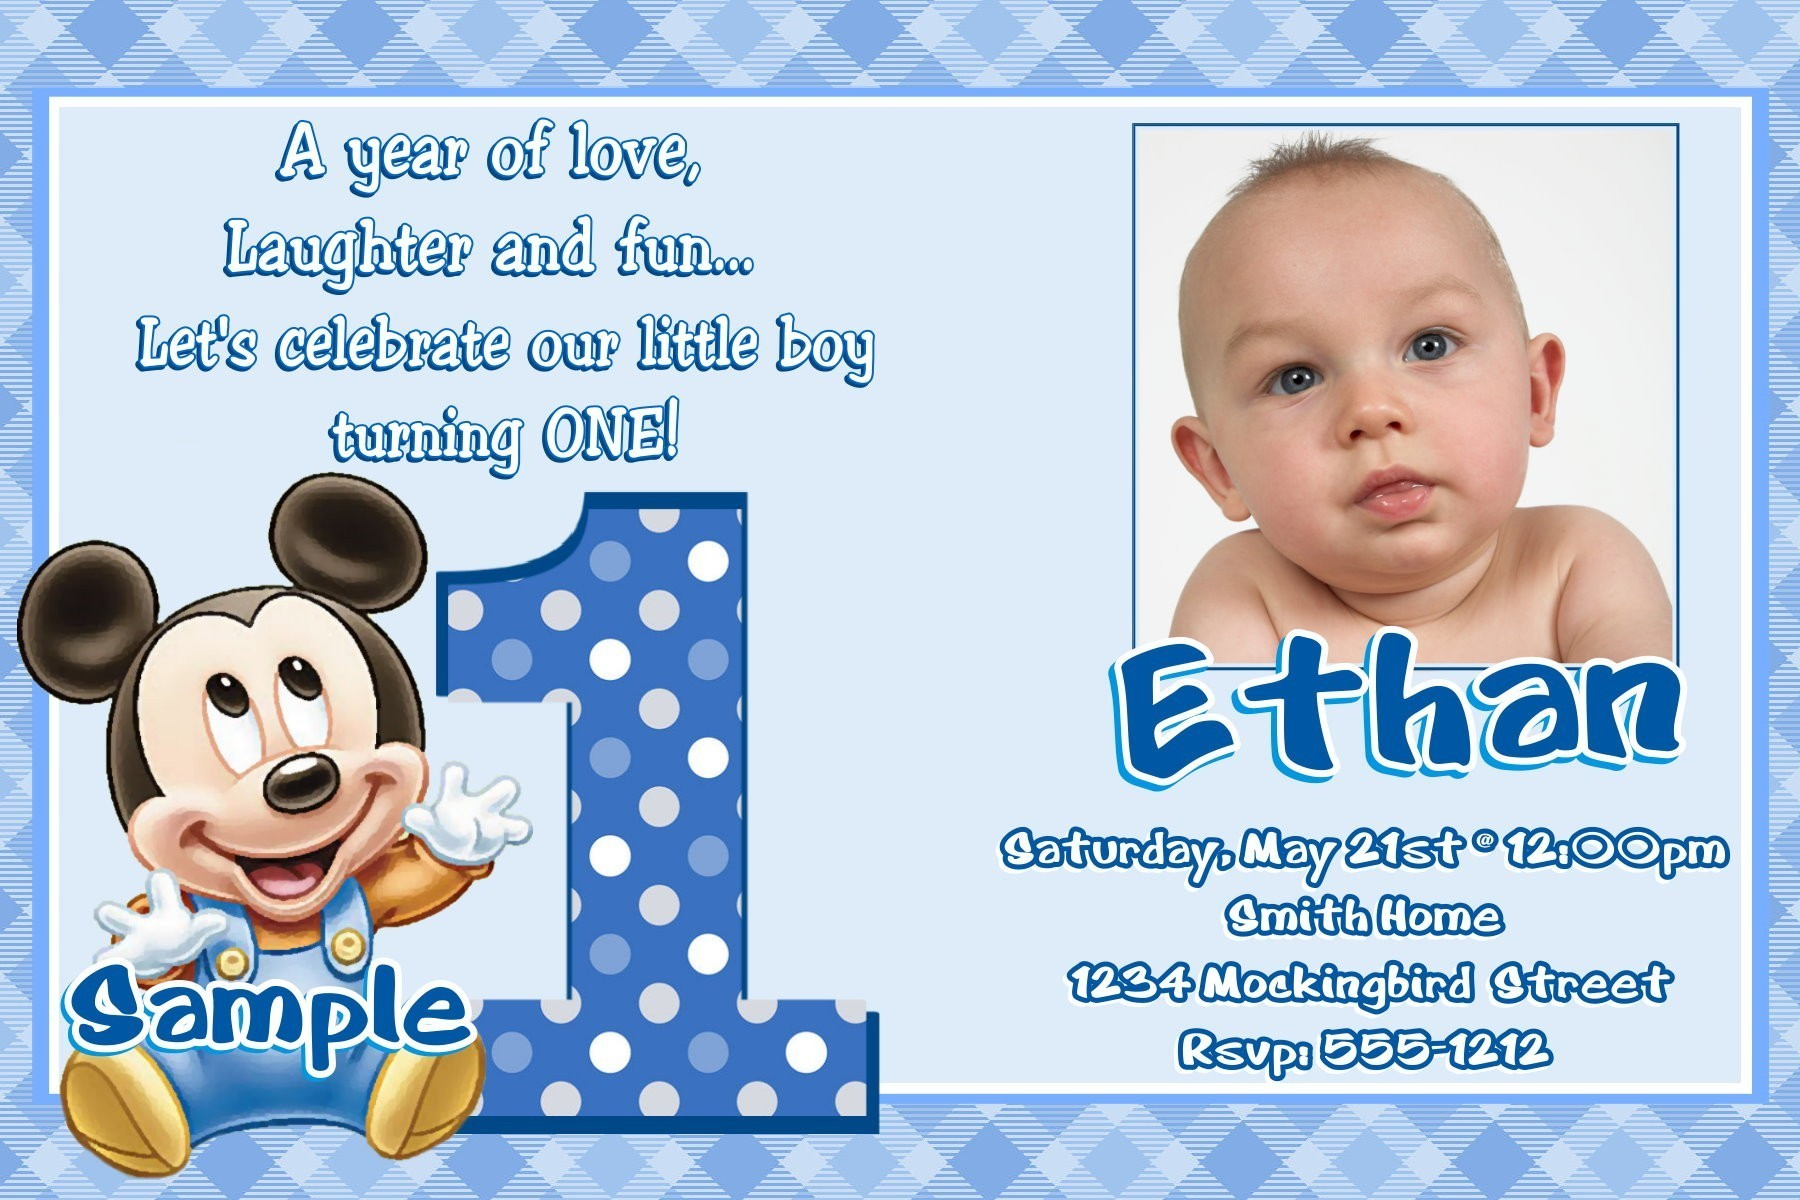 first birthday invitation letter ; Sample-Invitation-Letter-For-Fabulous-First-Birthday-Invitation-Email